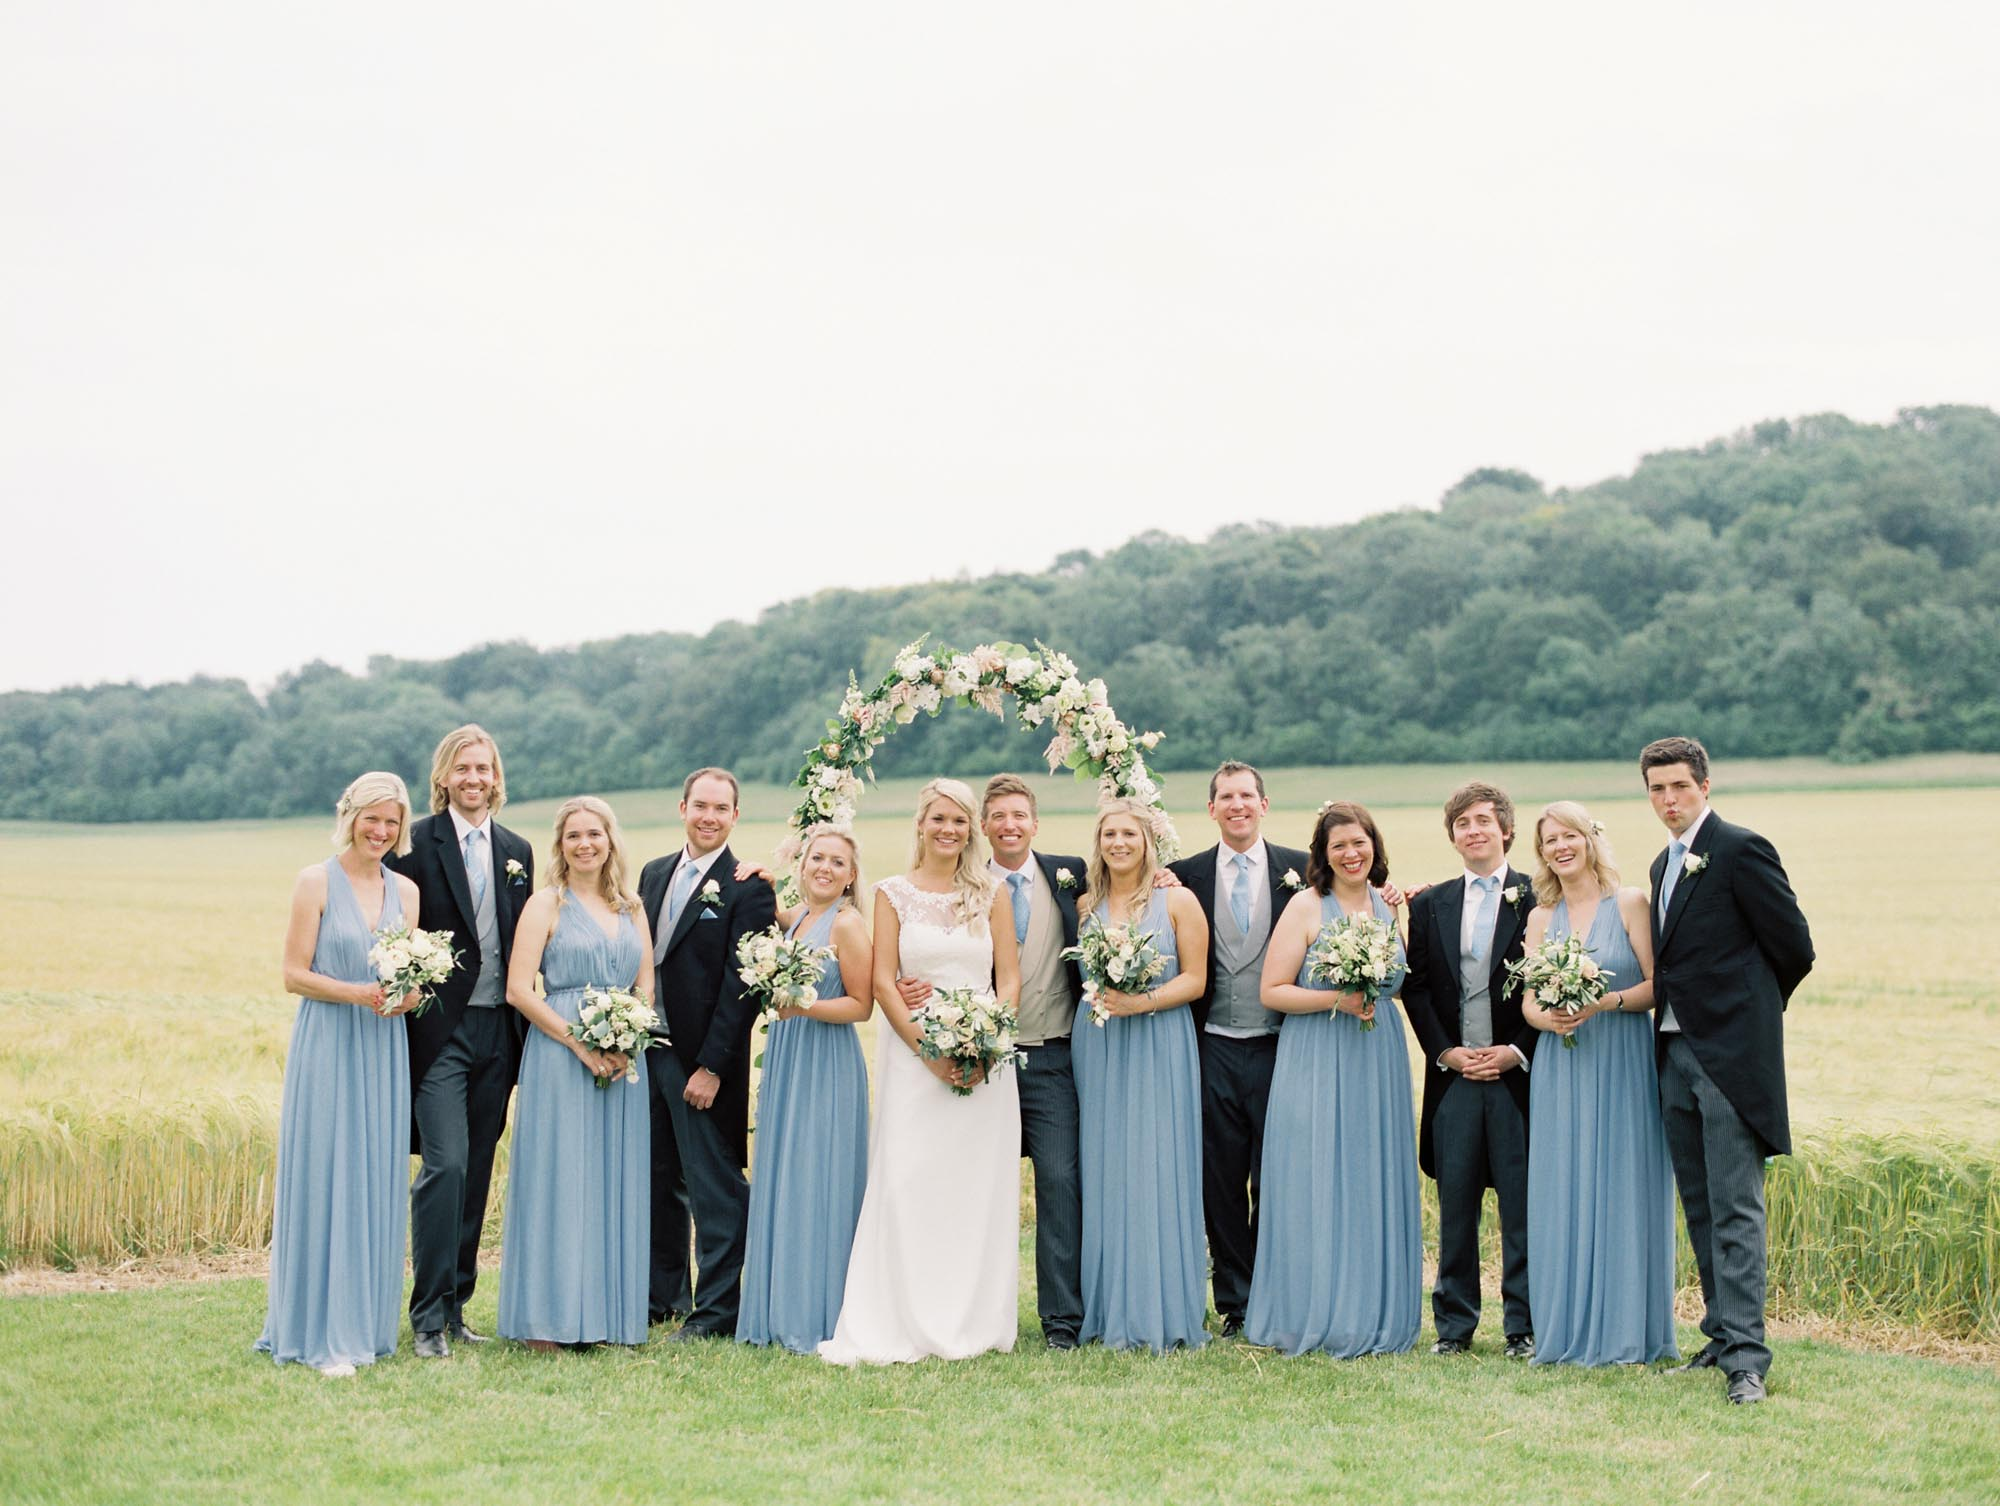 Wedding party in natural group photo captured by luxury film wedding photographer Camilla Arnhold